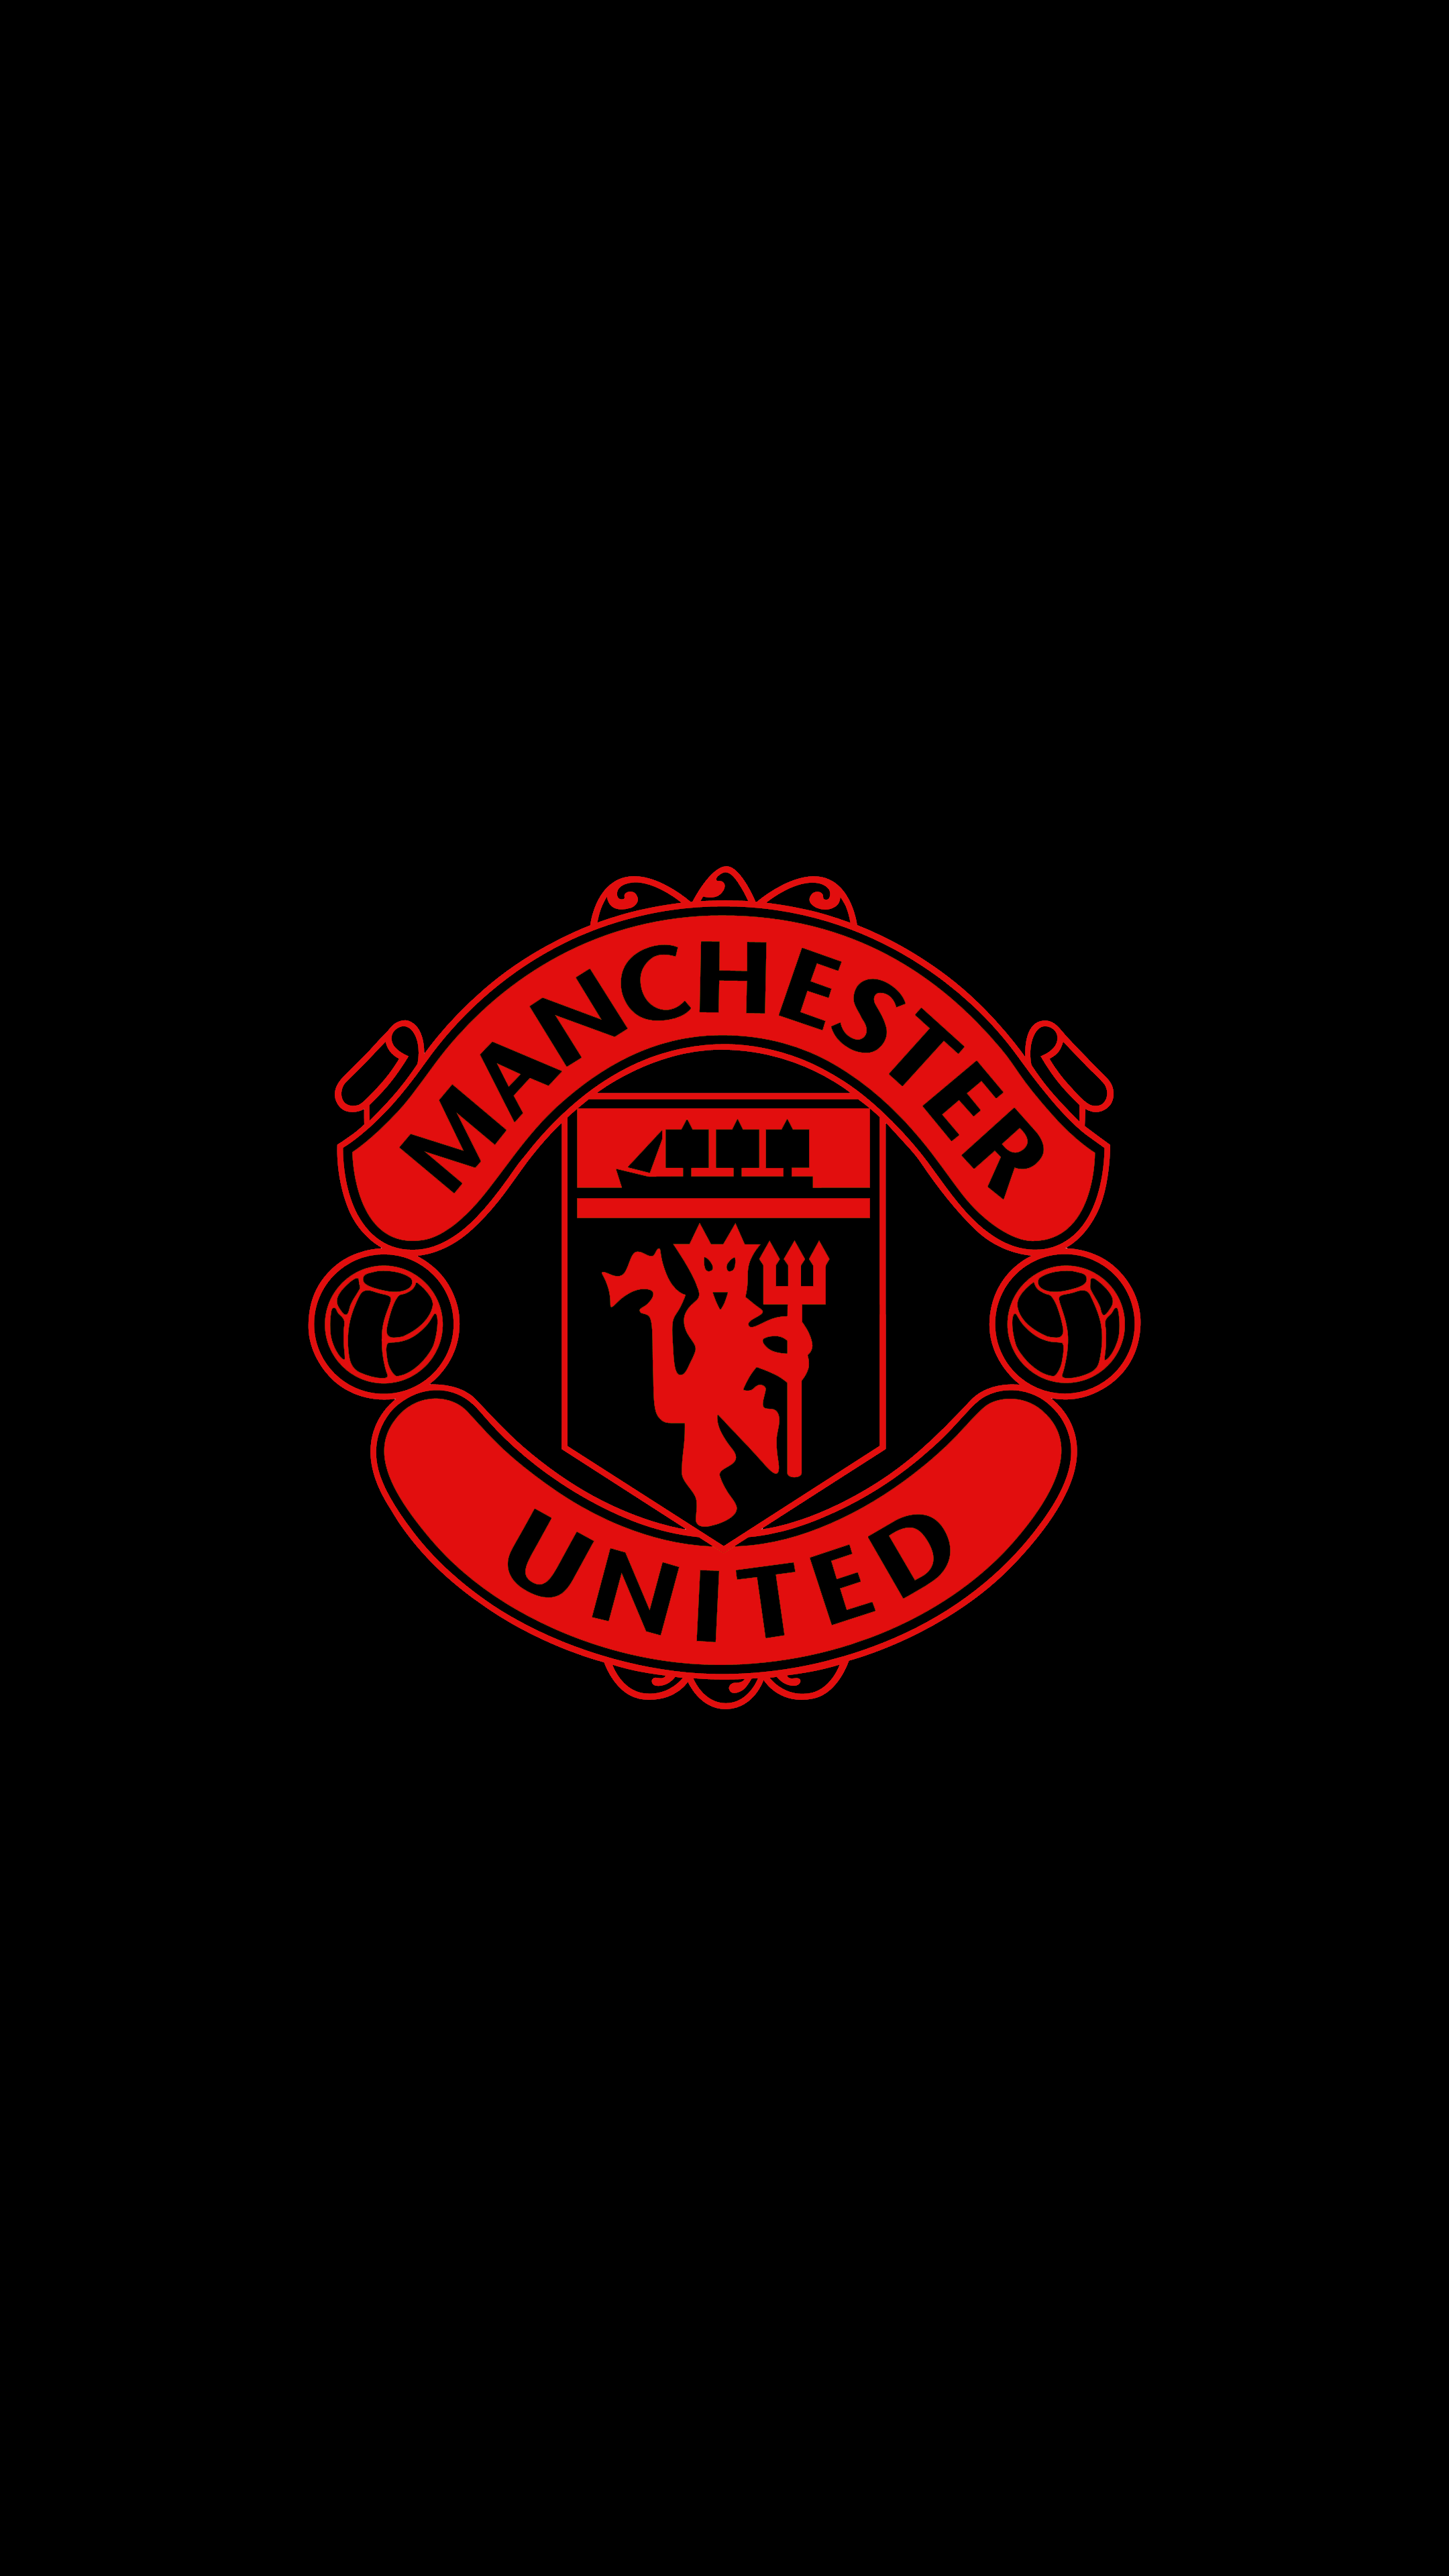 Manchester United Crests Over The Years With Images Manchester United Manchester United Badge Manchester United Legends